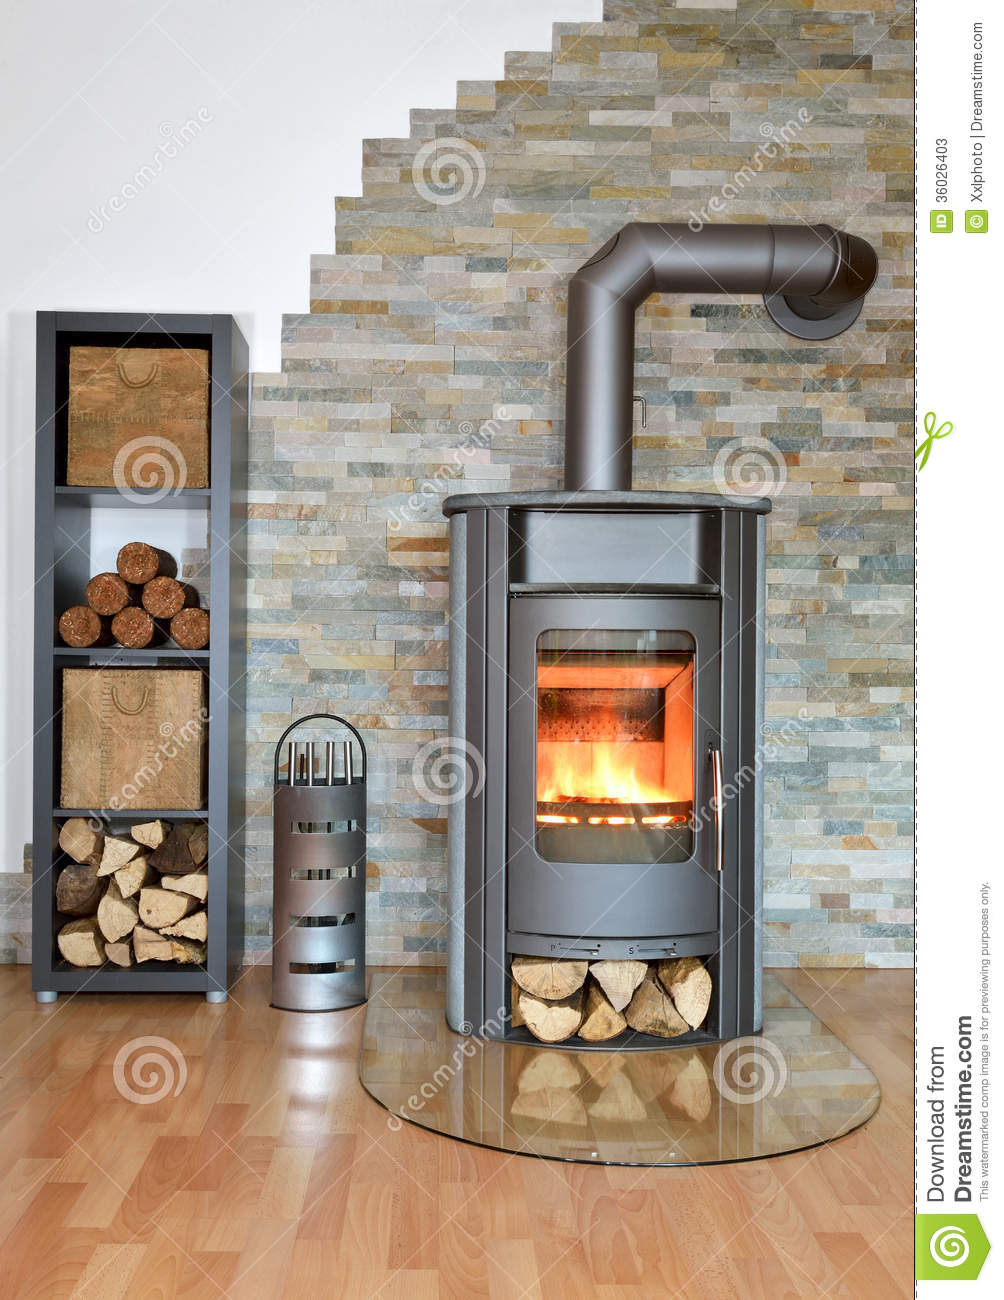 bark fire irons stove wood ... - Wood Fired Stove Stock Photos - Image: 36026403